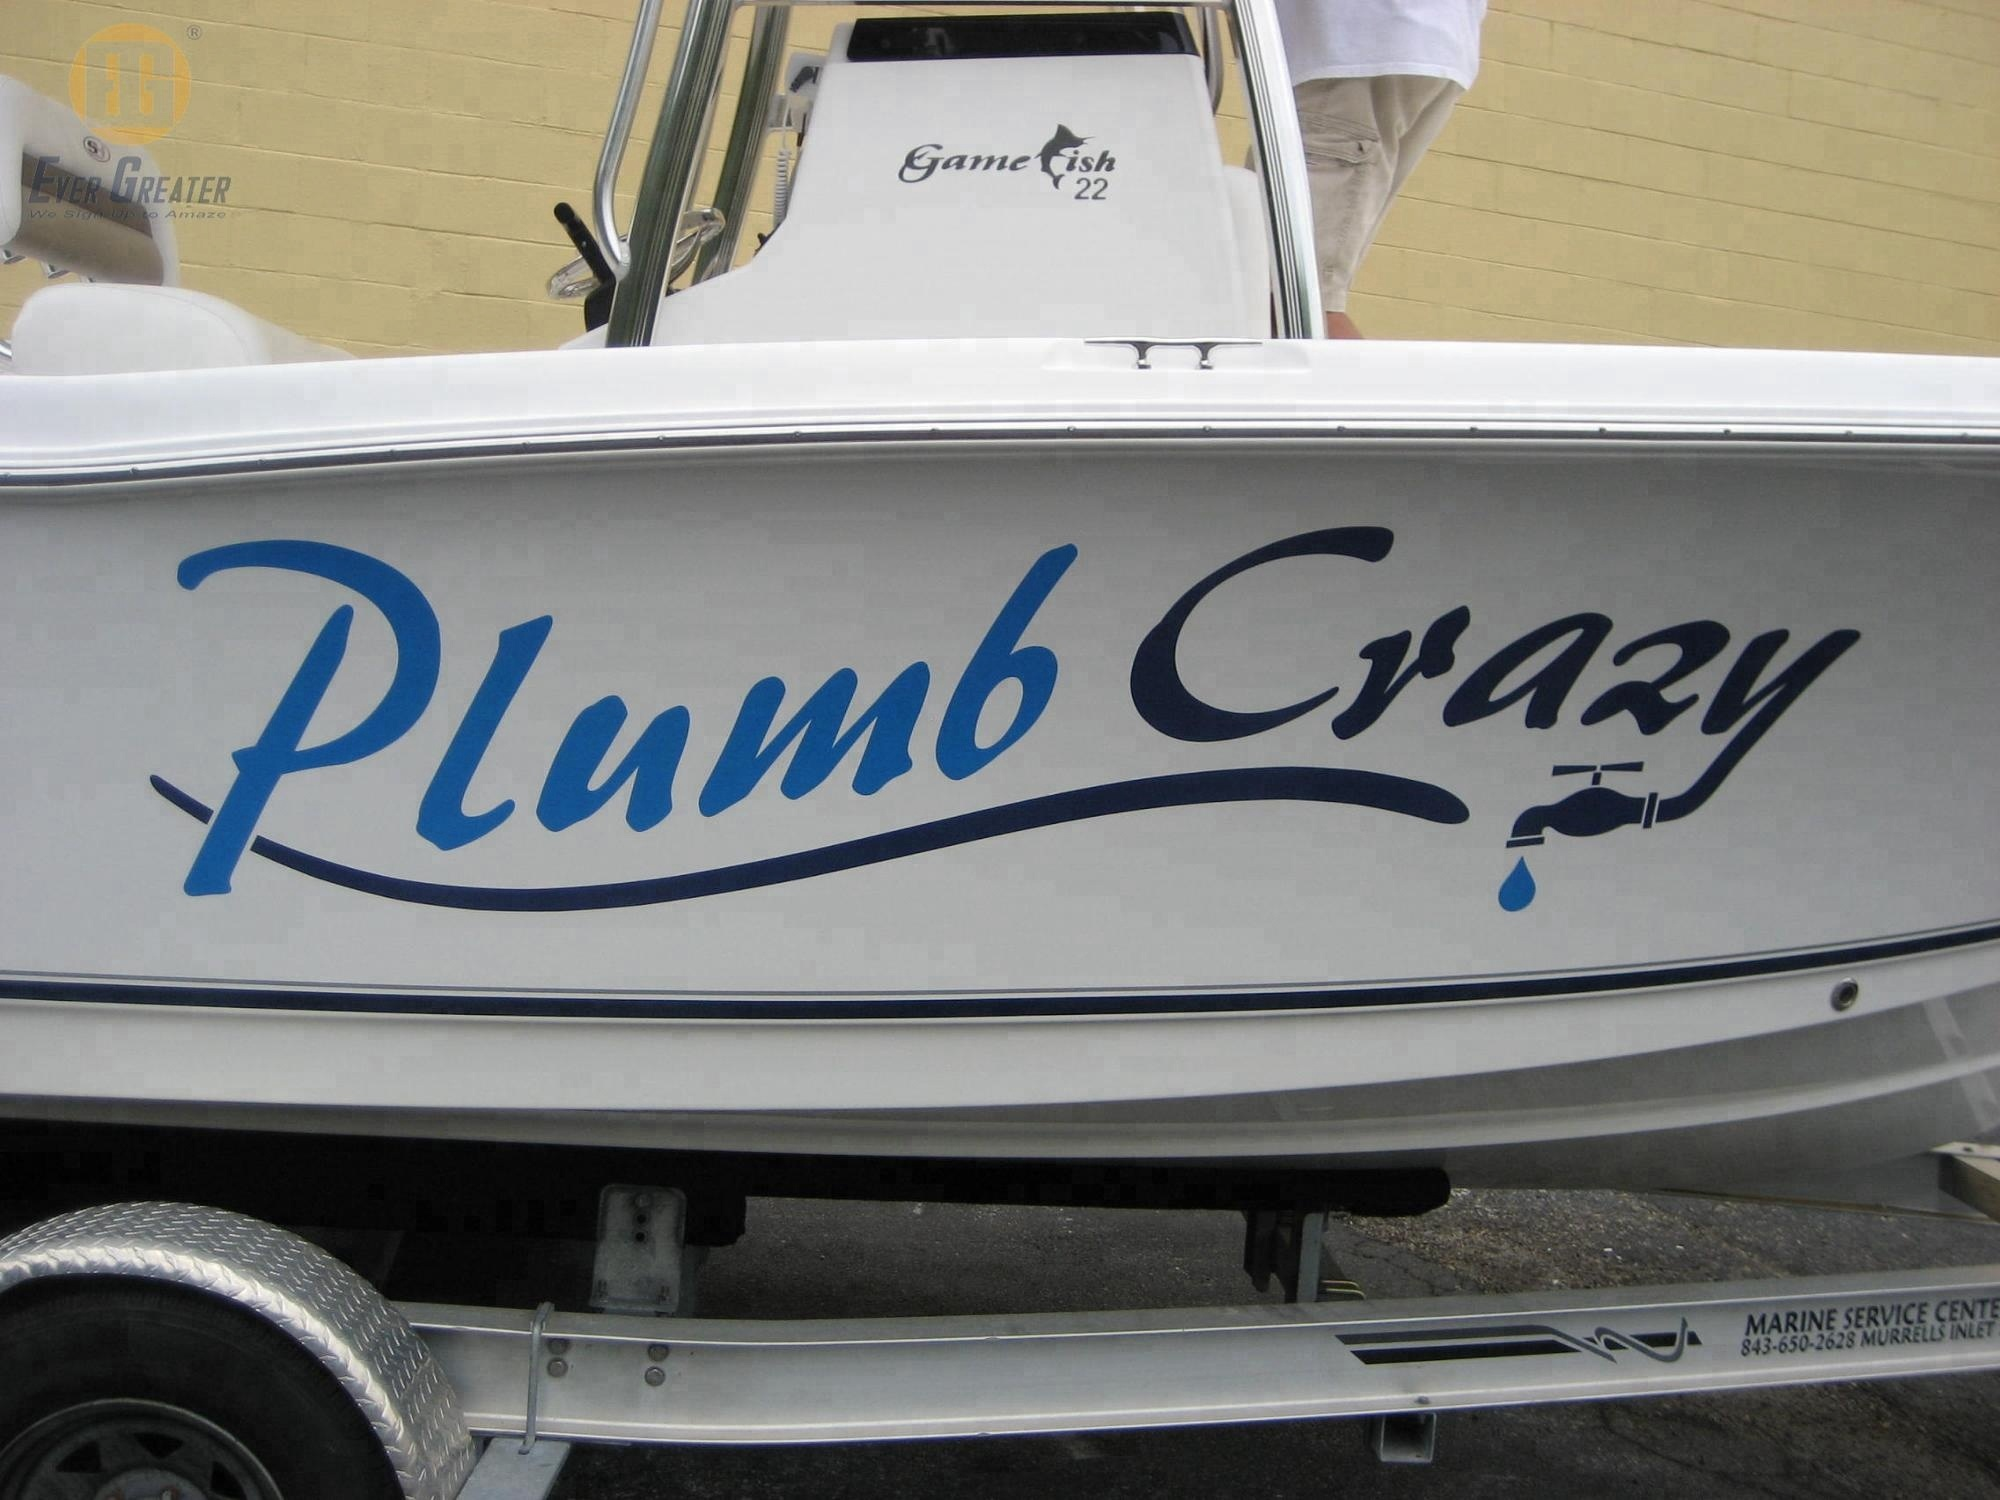 custom boat decal custom boat decal suppliers and manufacturers at alibabacom